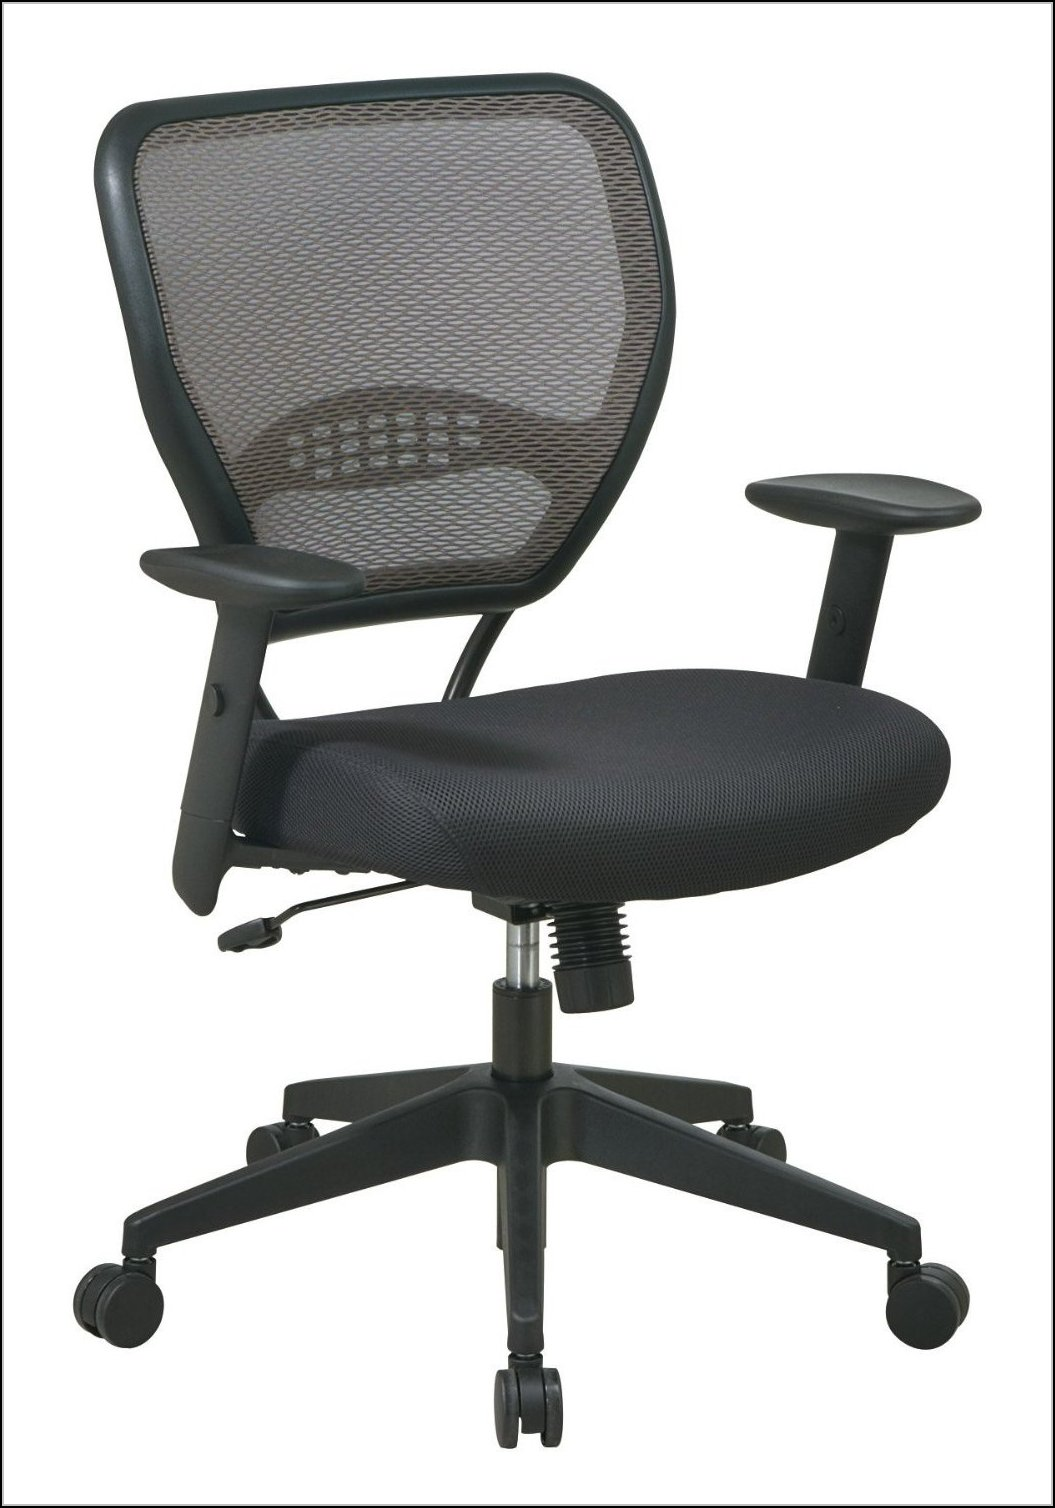 bad back chairs for home chair steel round best office design